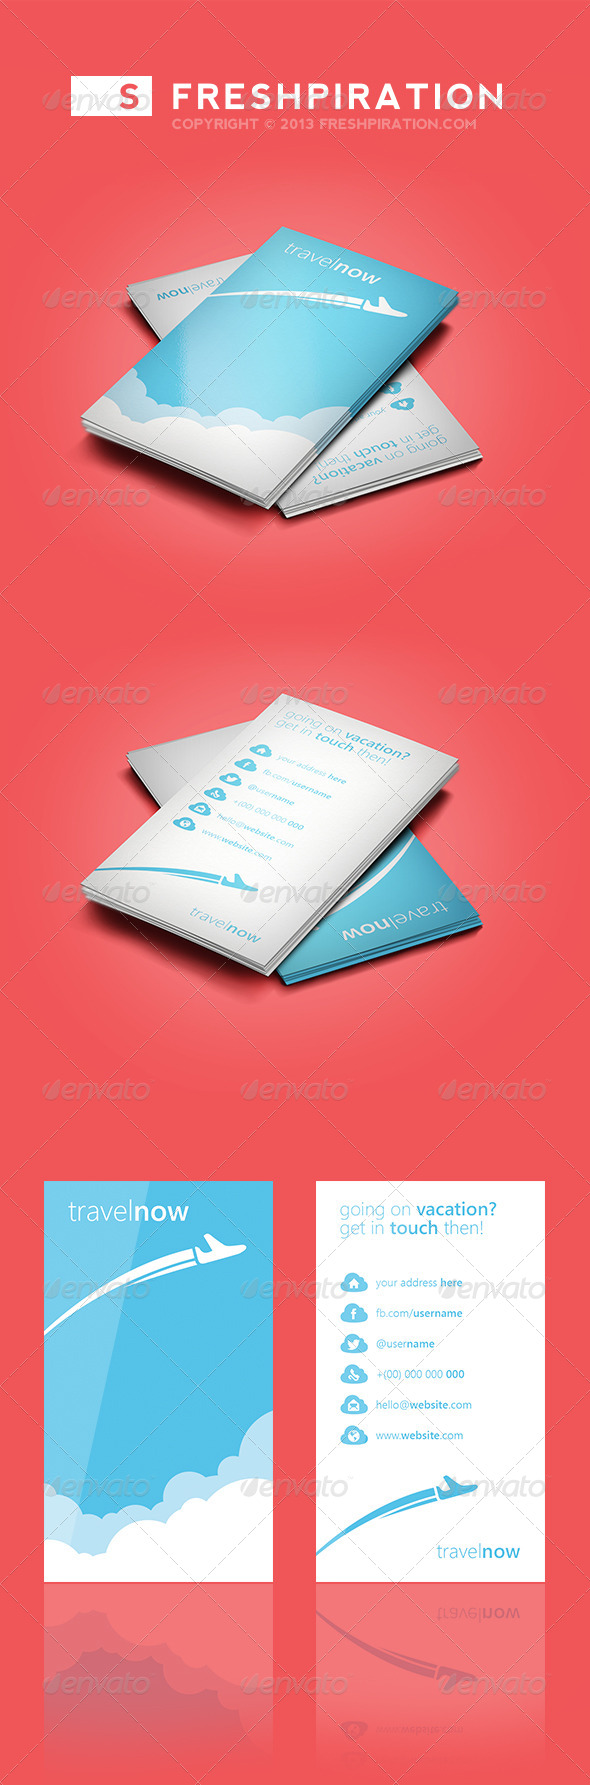 Amazoncom business card templates for avery 8371